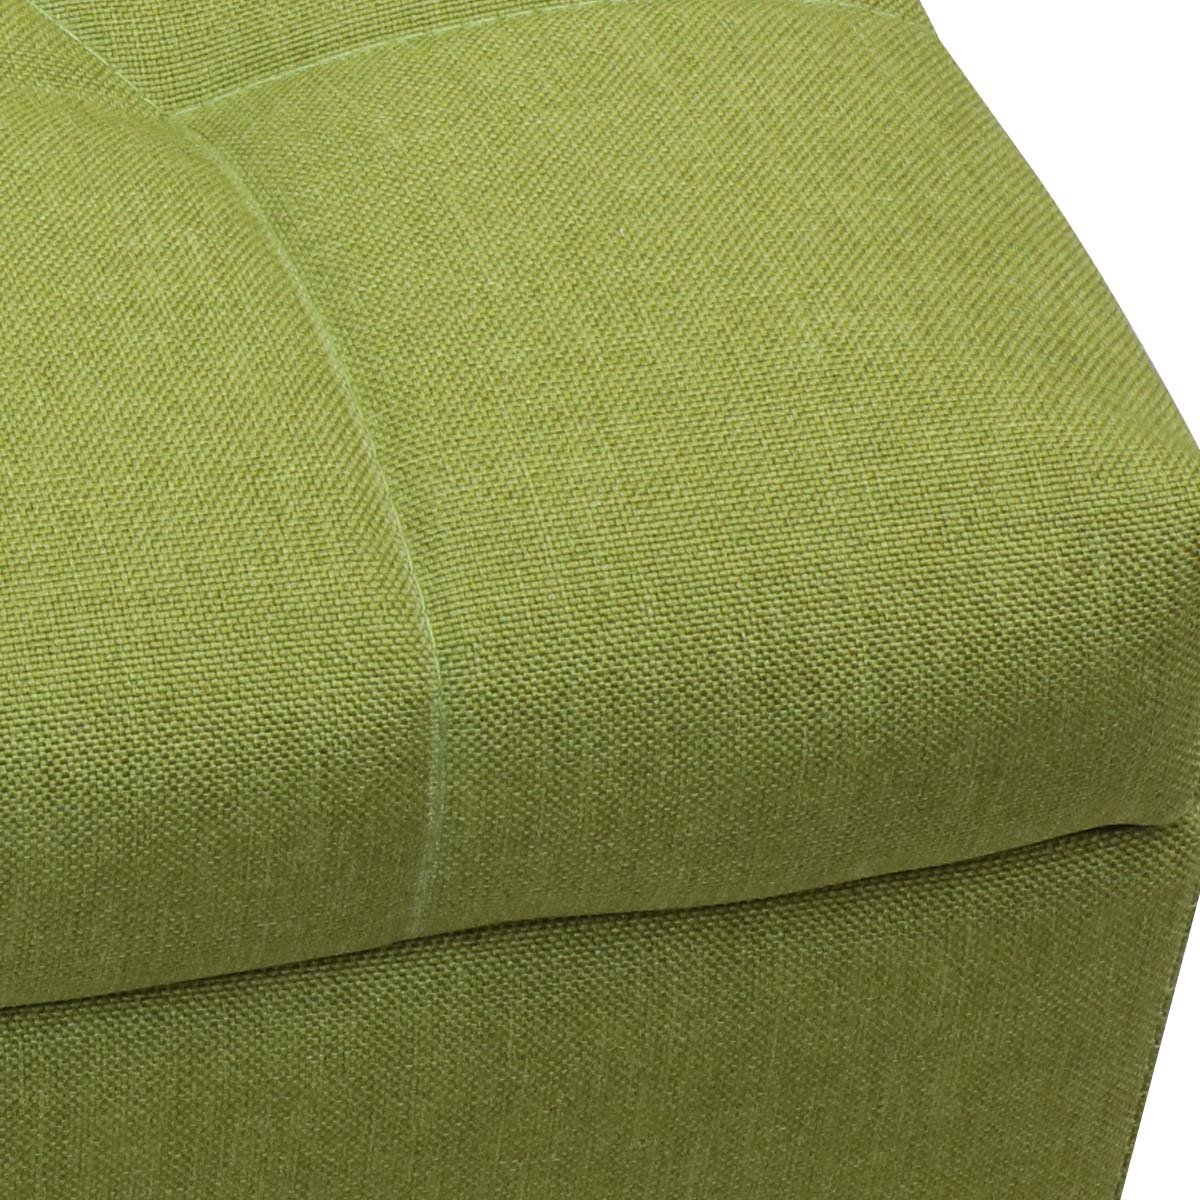 Magshion Rectangular Storage Ottoman Bench Tufted Footrest Lift Top Pouffe Ottoman, Coffee Table, Seat, Foot Rest, and more (42'', Linen Olive) by Magshion (Image #4)